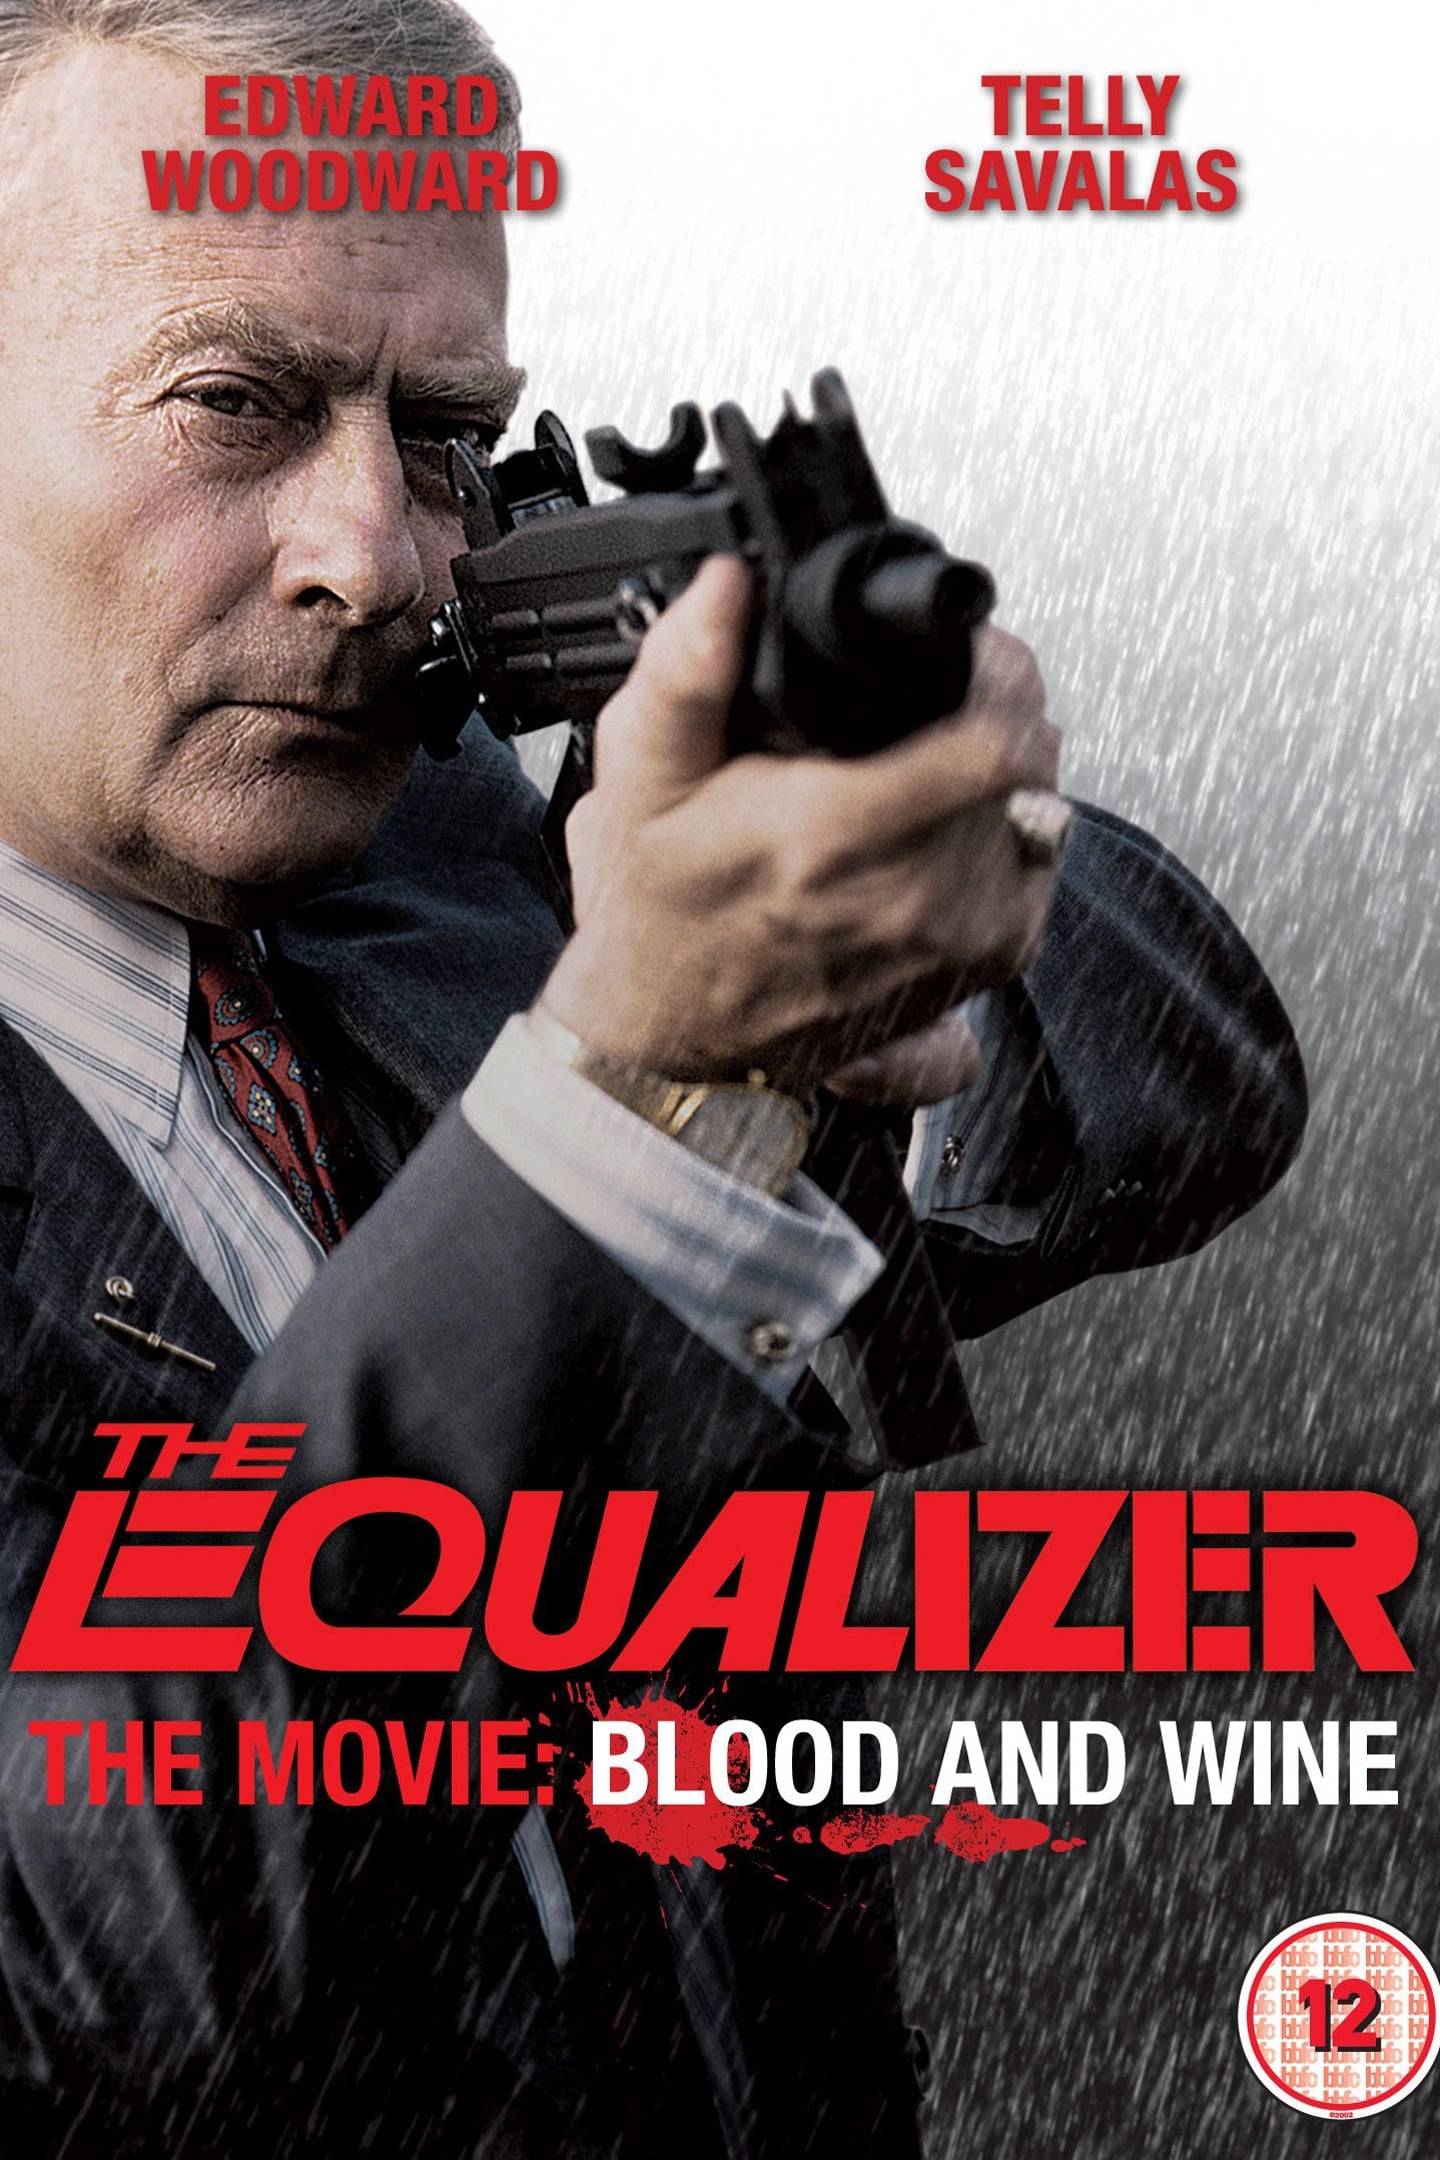 The Equalizer - The Movie: Blood & Wine (1987)